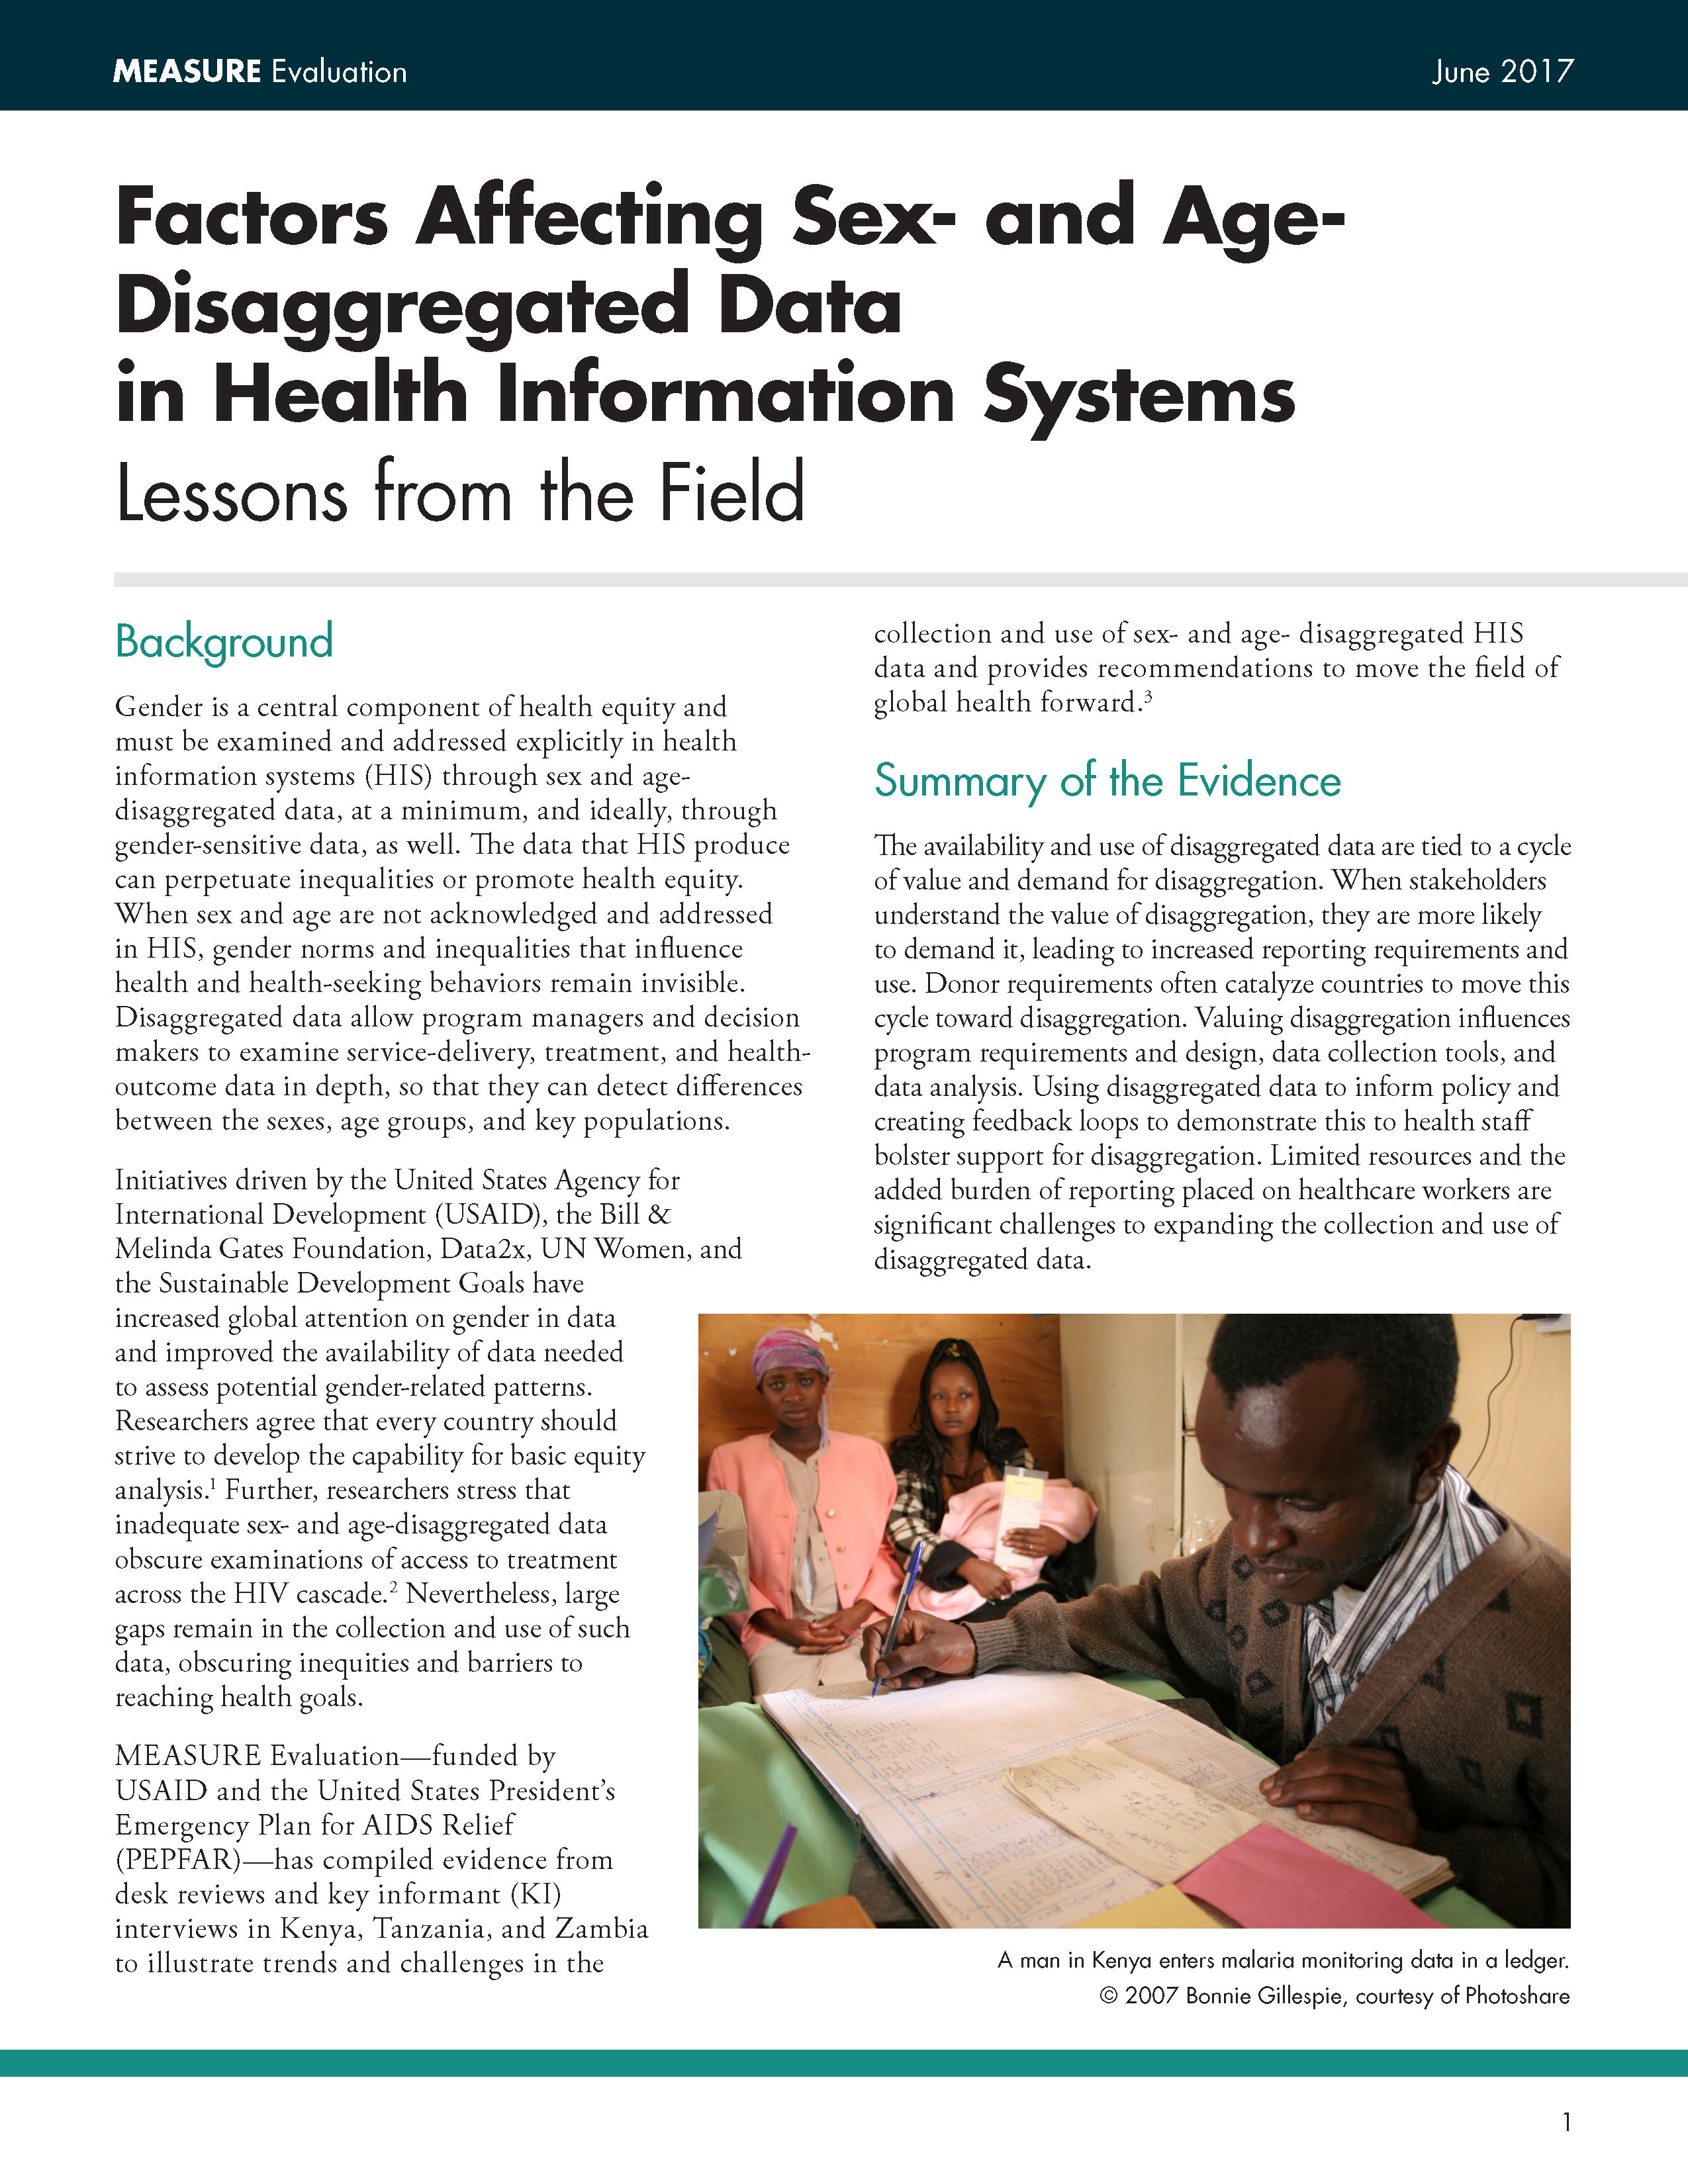 Factors Affecting Sex- and Age-Disaggregated Data in Health Information Systems  Lessons from the Field